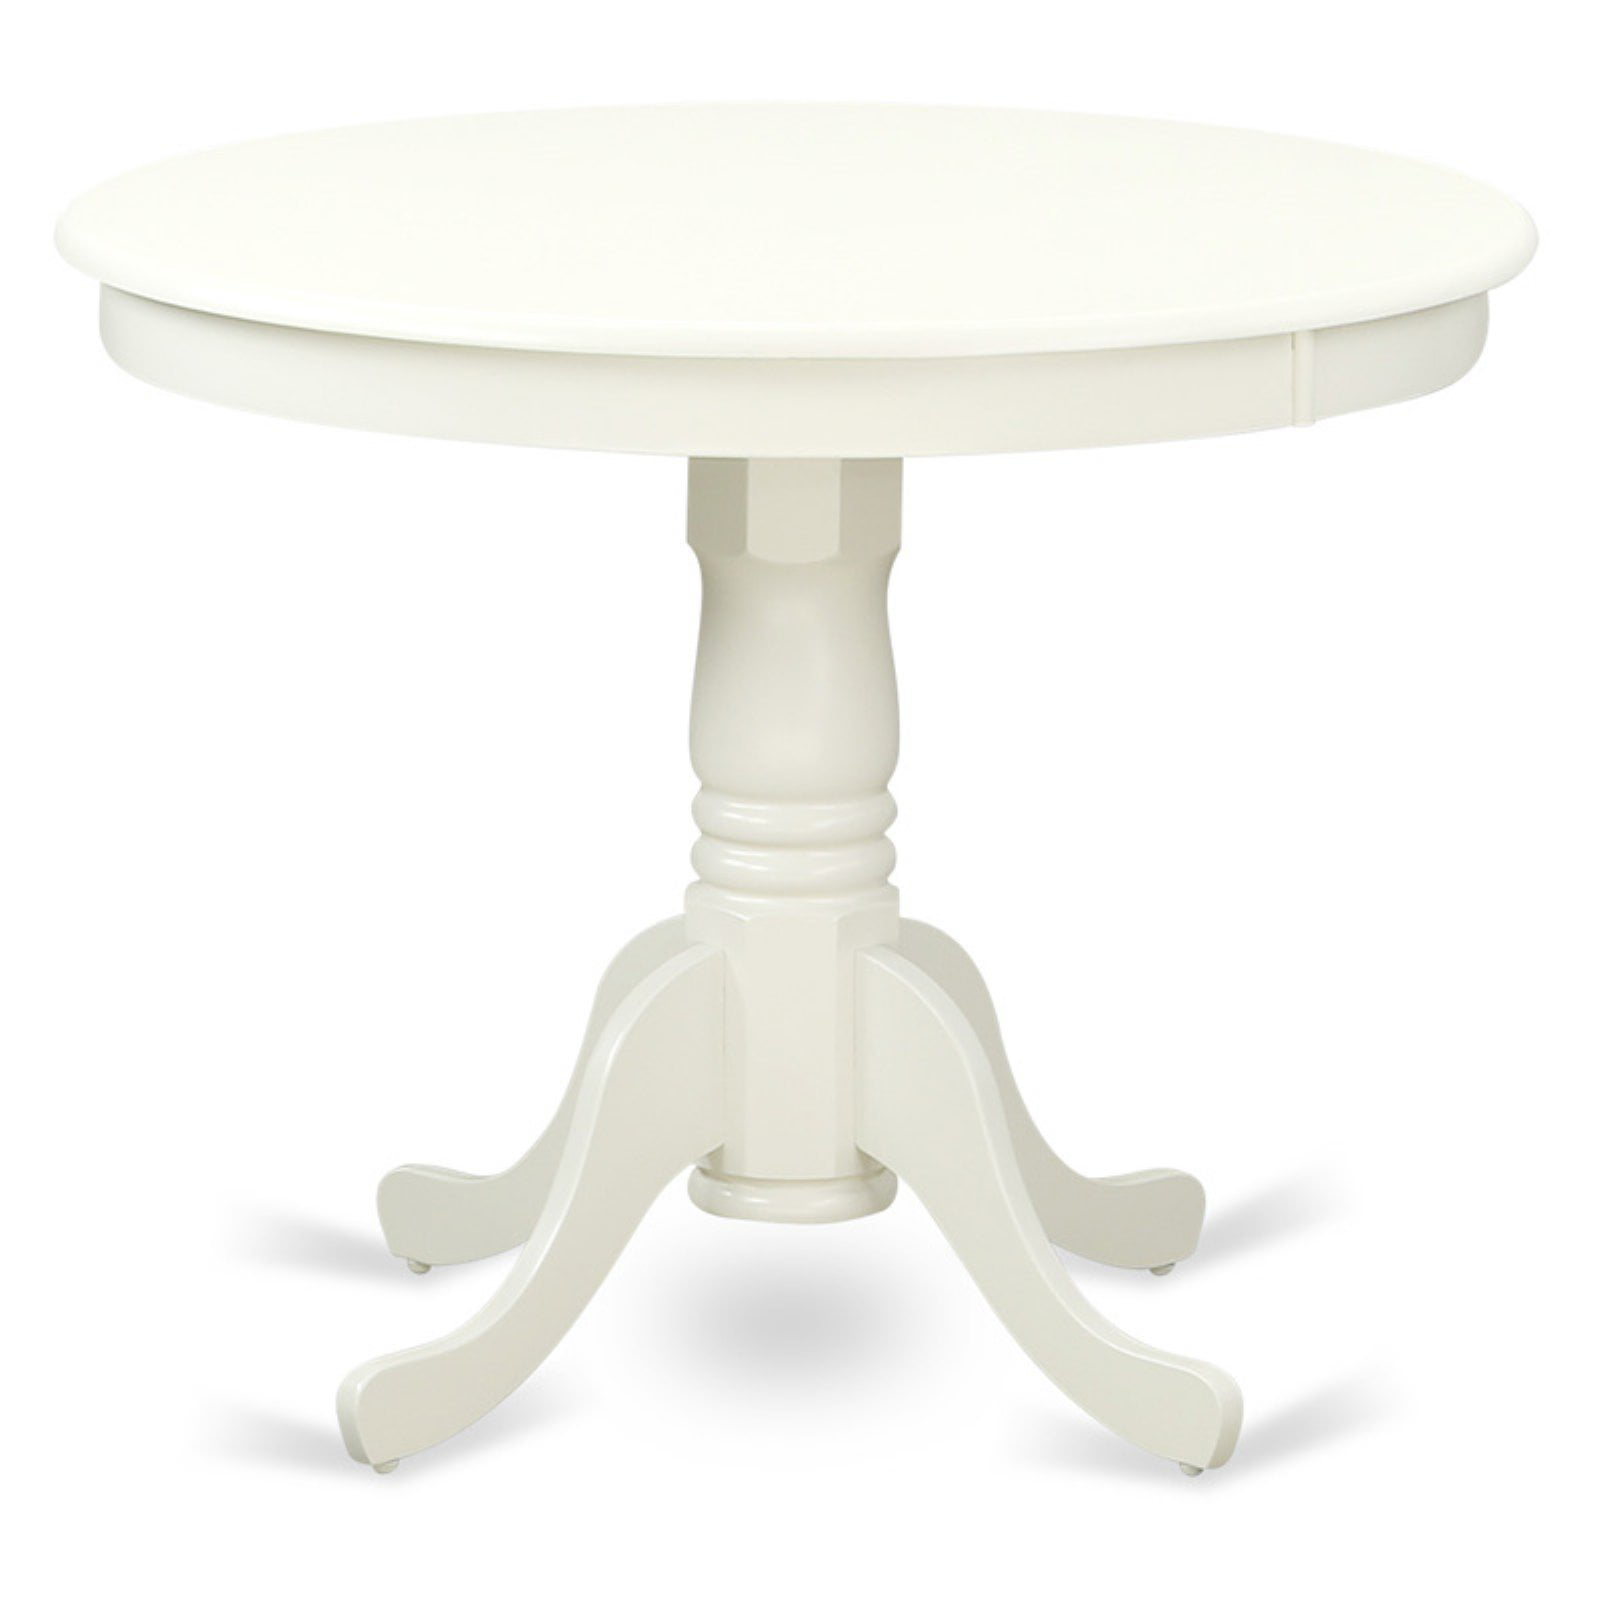 East West Furniture Linen White Round Antique Dining Table Walmart Com Walmart Com